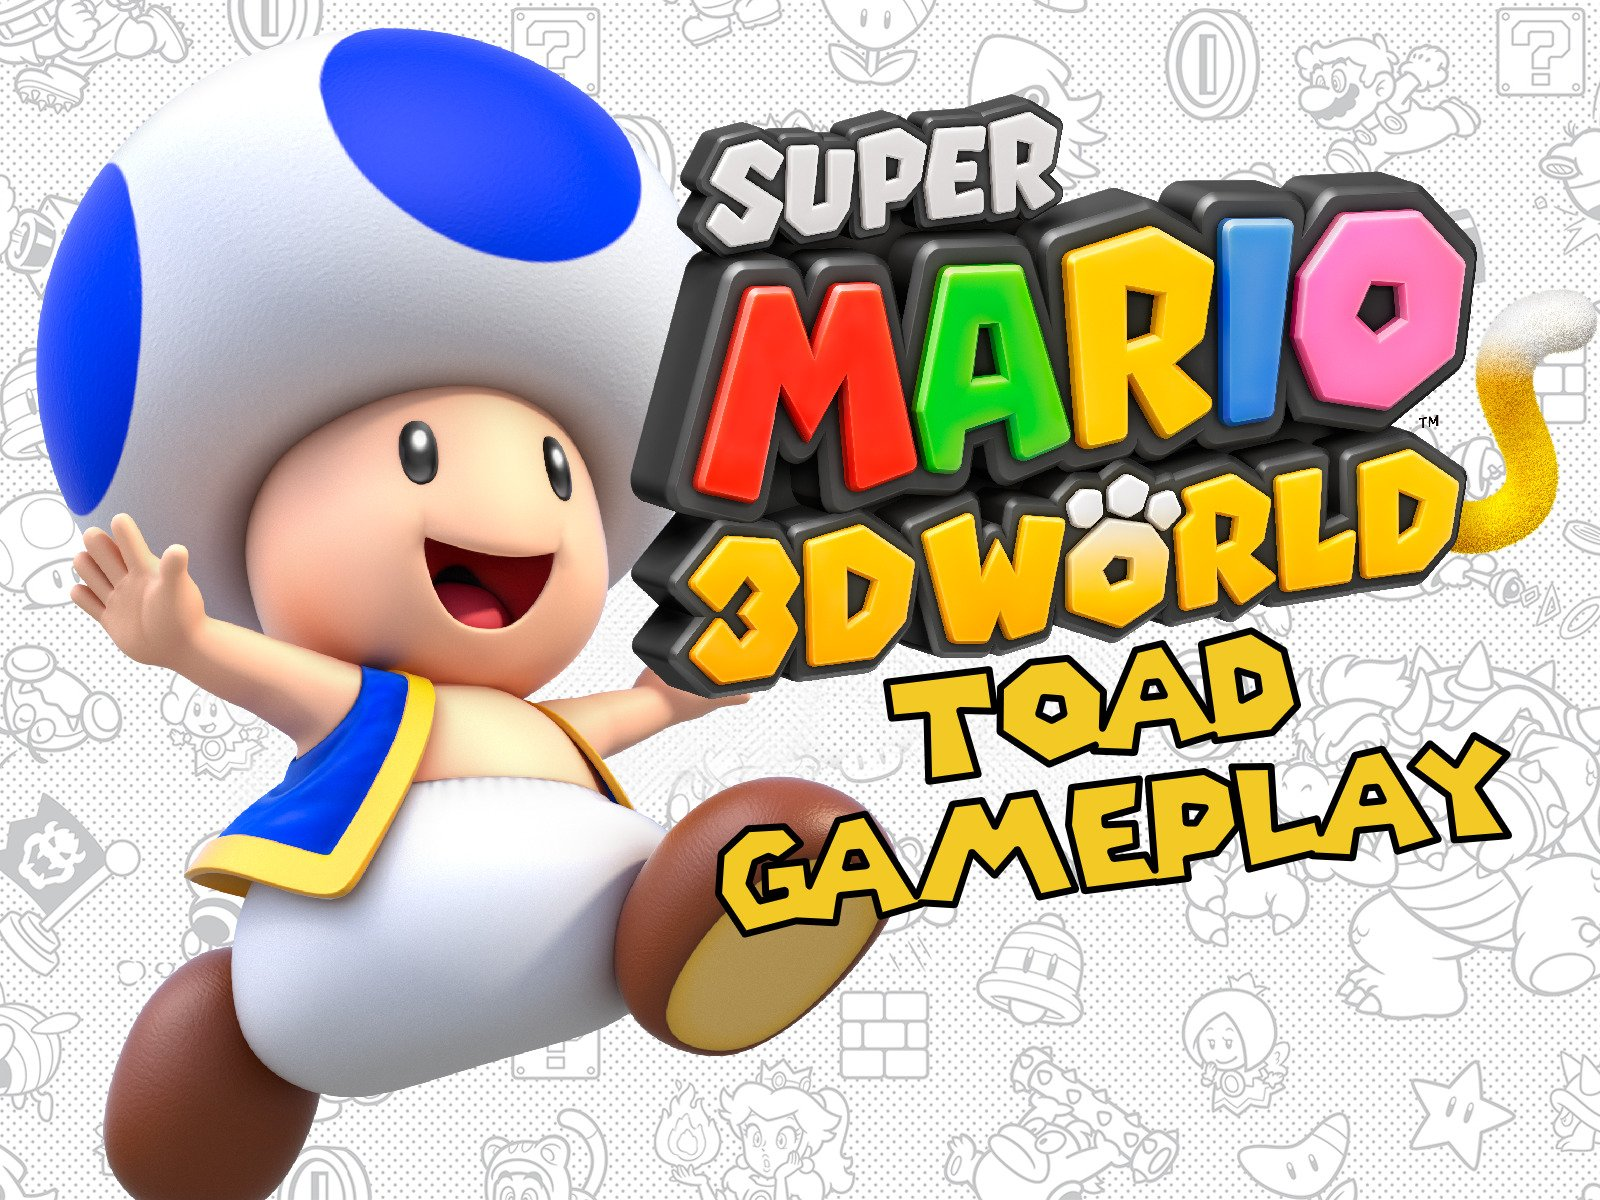 Super Mario 3D World Toad Gameplay on Amazon Prime Instant Video UK